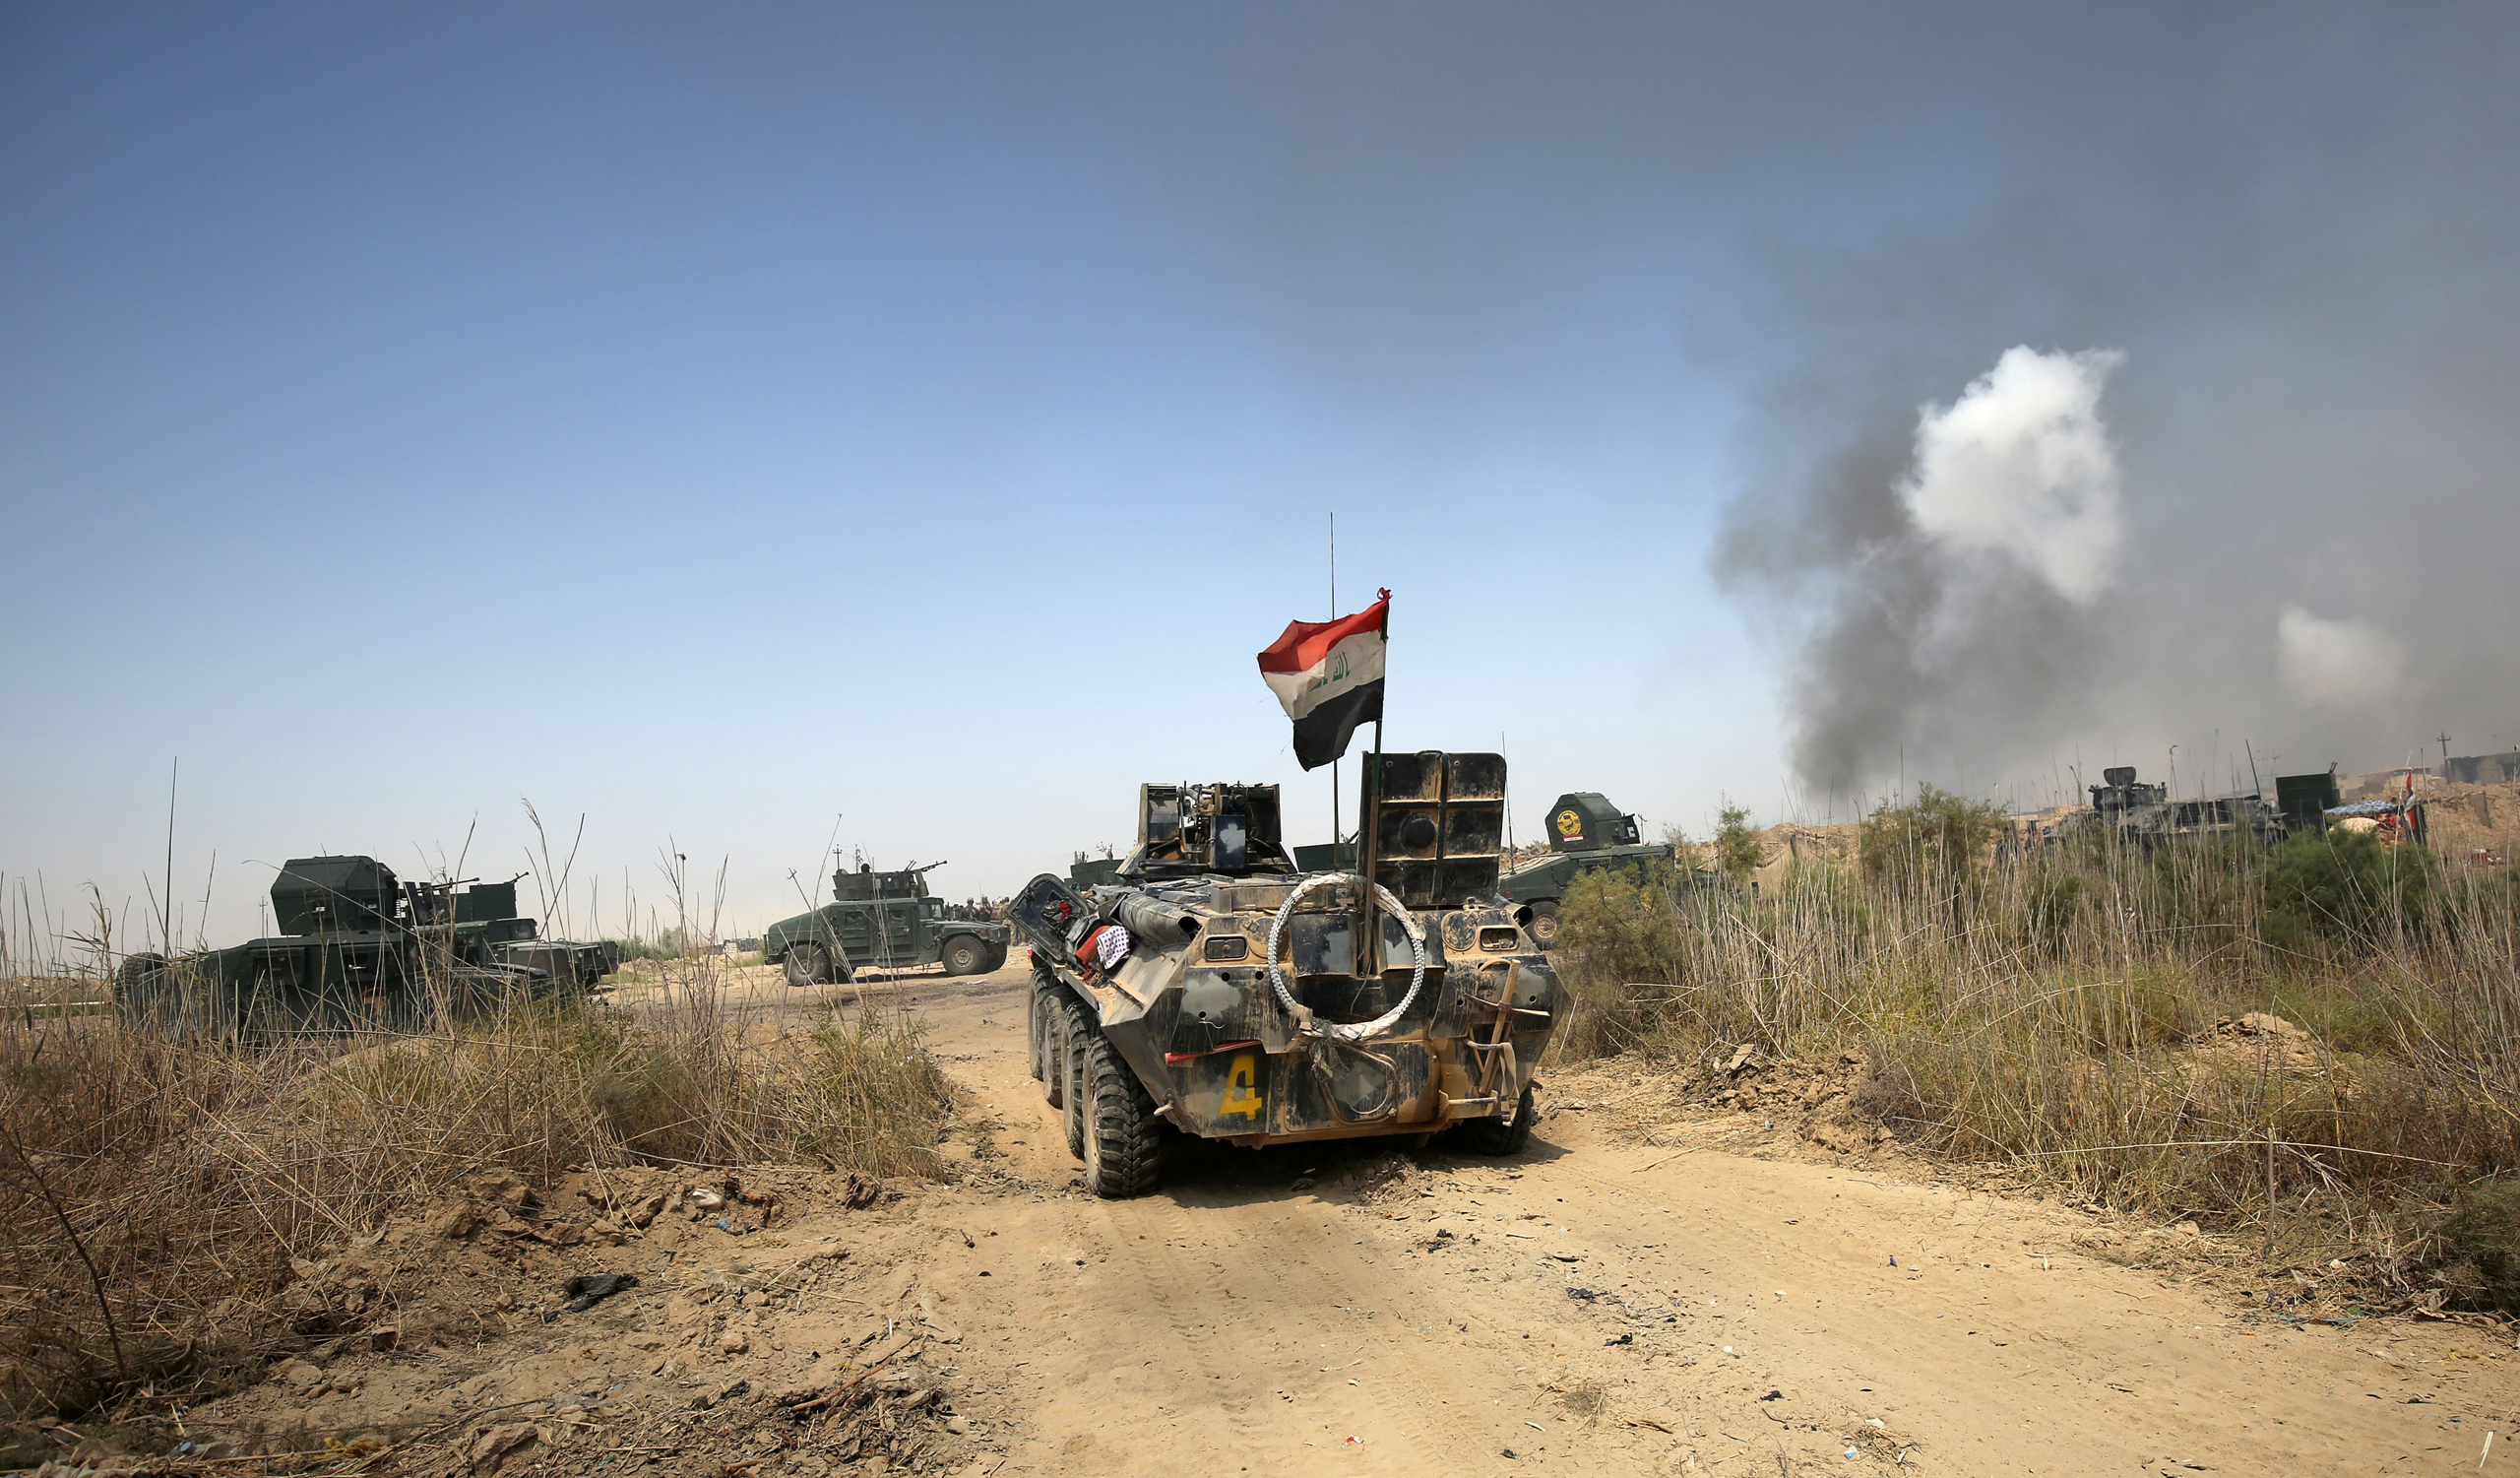 Iraqi government forces drive their armoured vehicles during an operation, backed by air support from the US-led coalition, in Fallujah's southern Shuhada neighbourhood to retake the area from the Islamic State (IS) group on June 15, 2016.